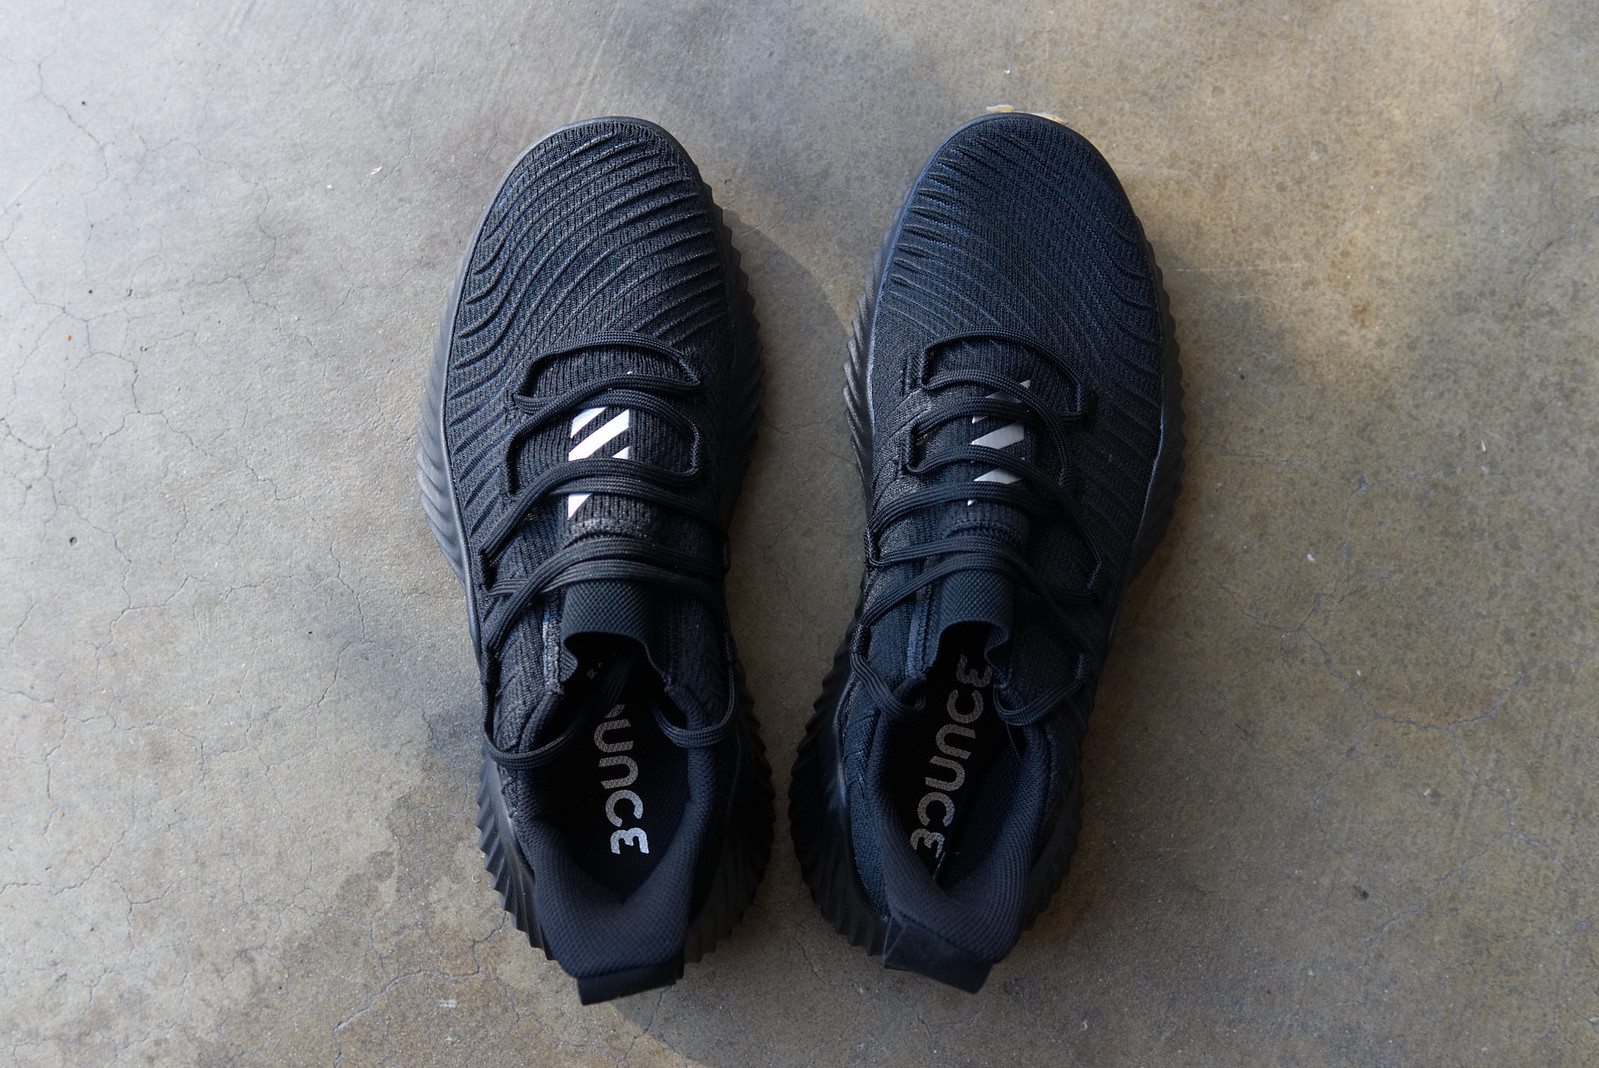 Adidas Alphabounce Trainer Review |As